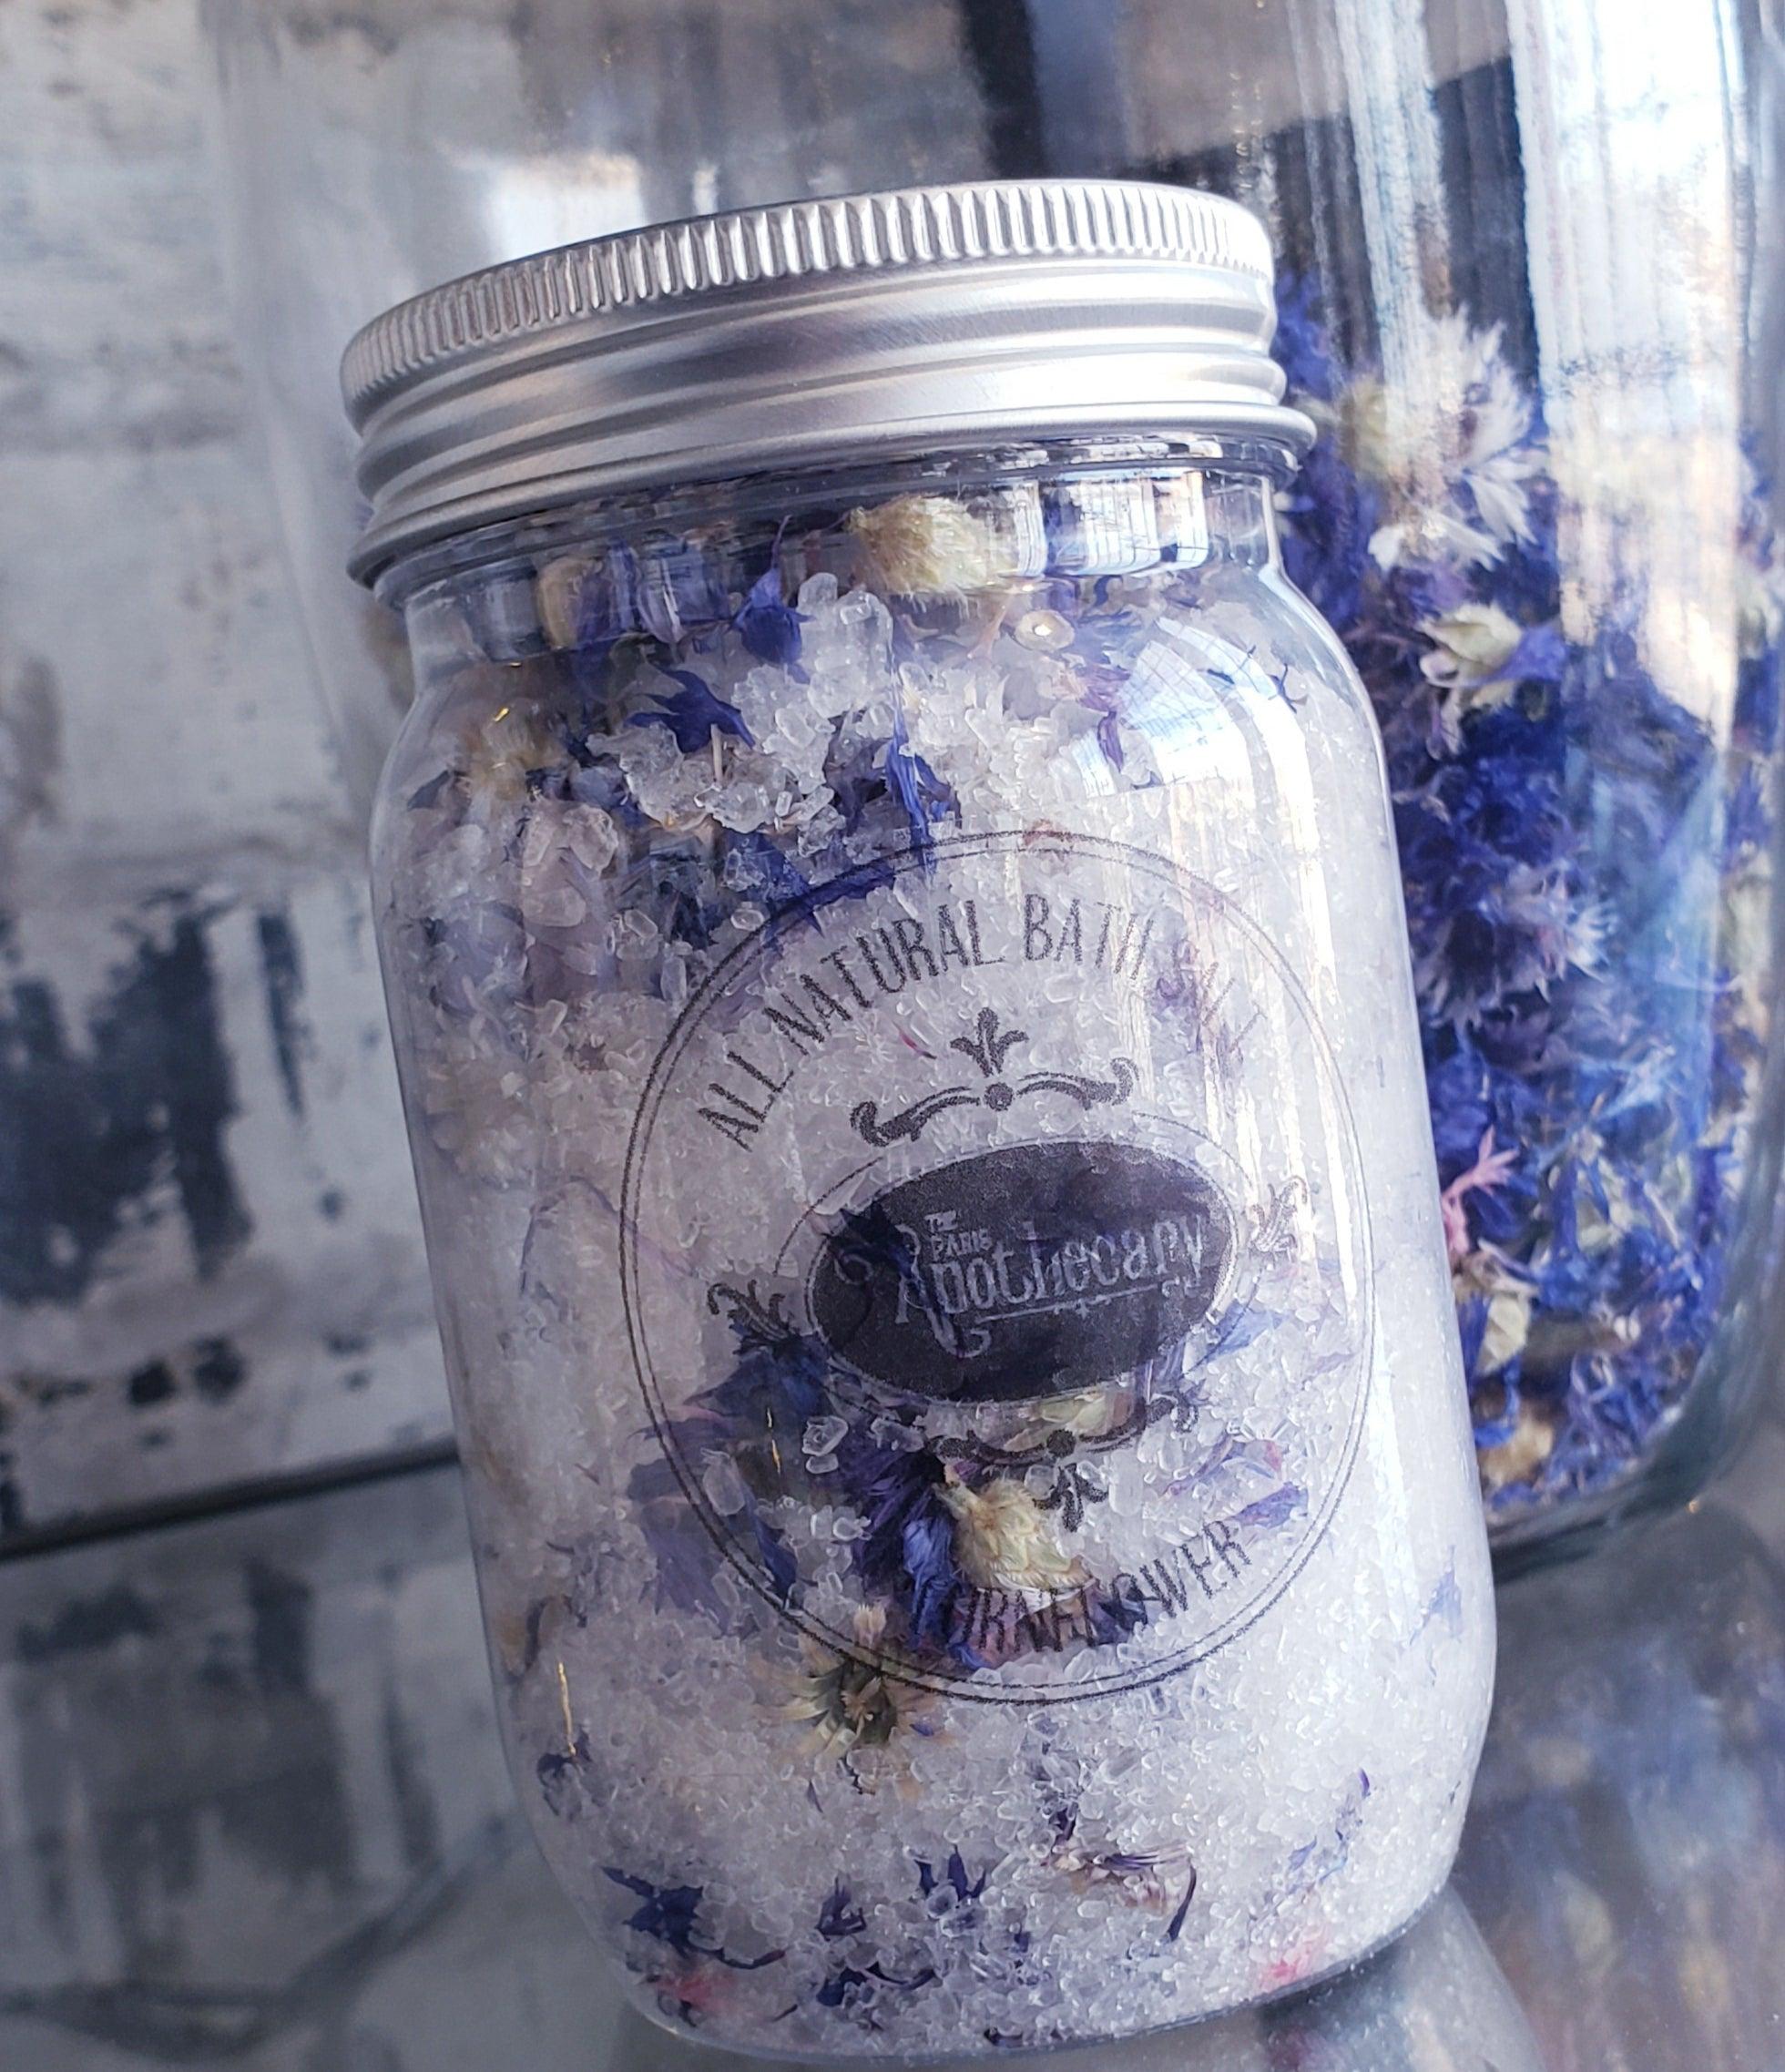 Cornflower Bath Salt